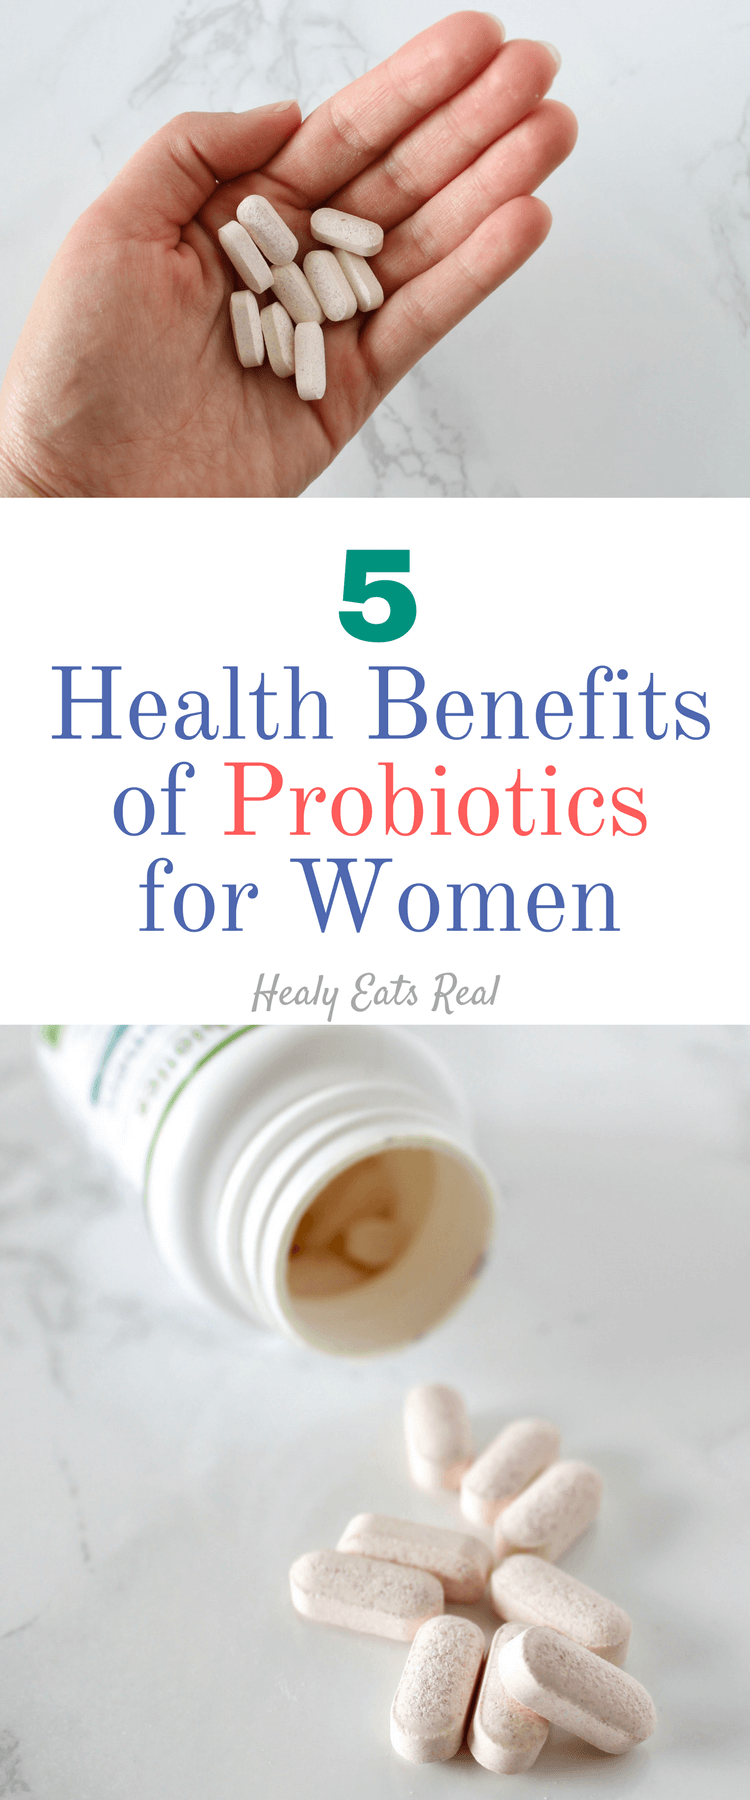 5 Health Benefits of Probiotics for Women